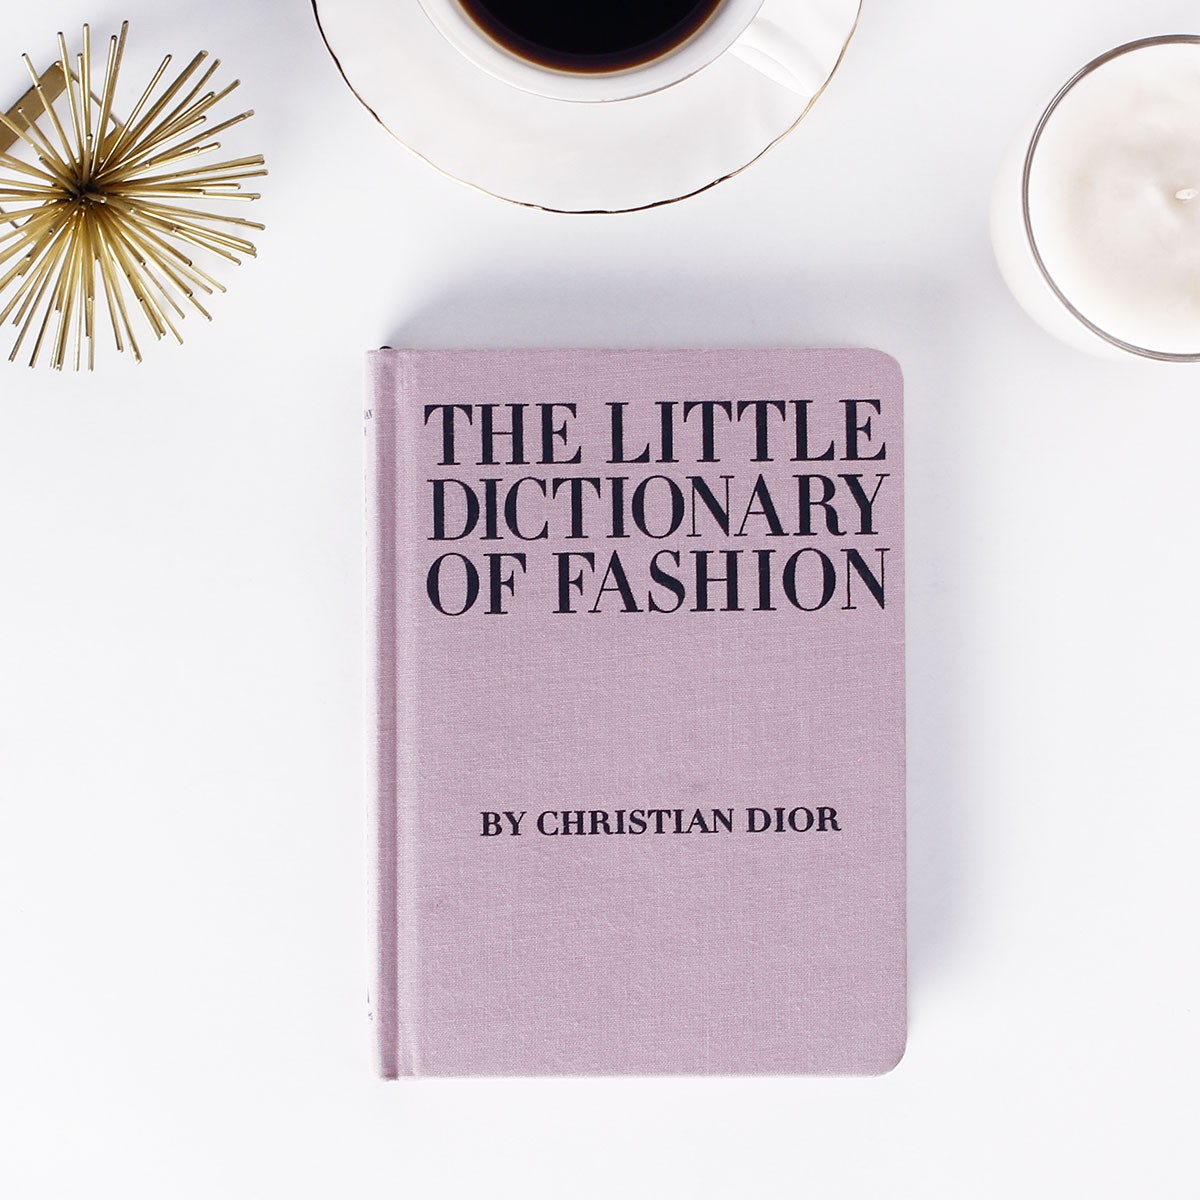 Giới thiệu sách hay The little dictionary of fashion - Christian Dior